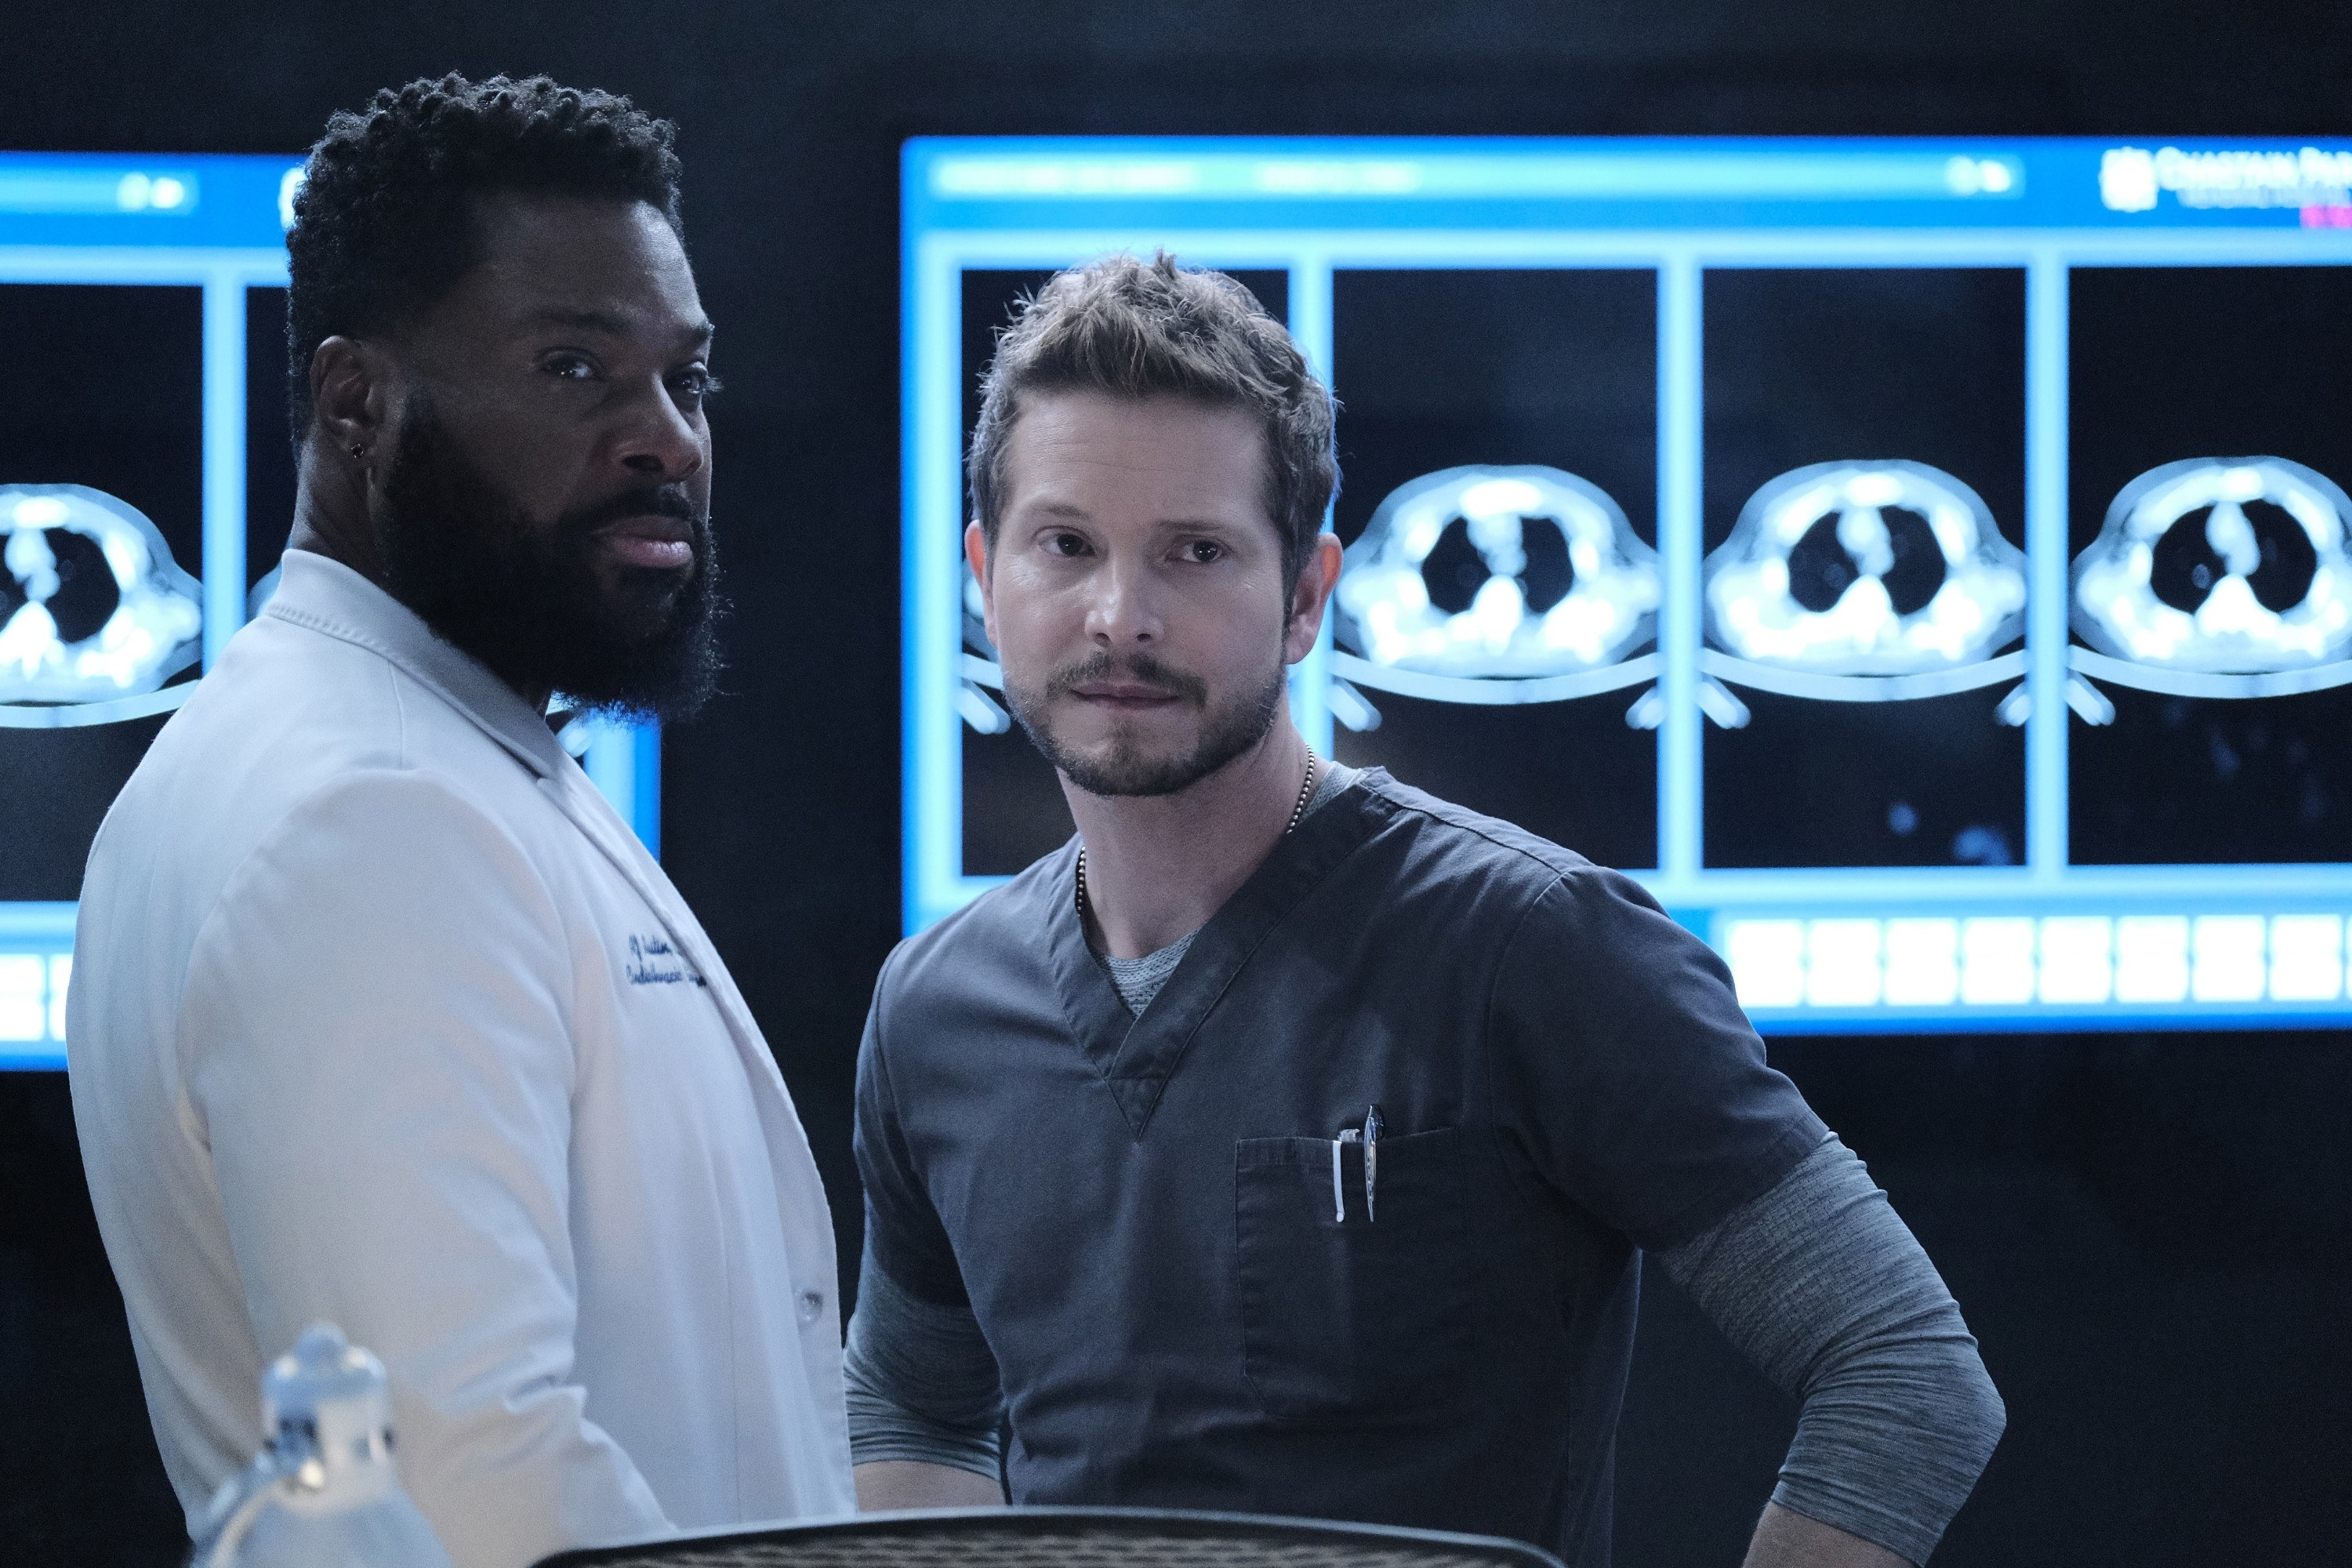 Conrad and AJ contemplating a patient's case on The Resident